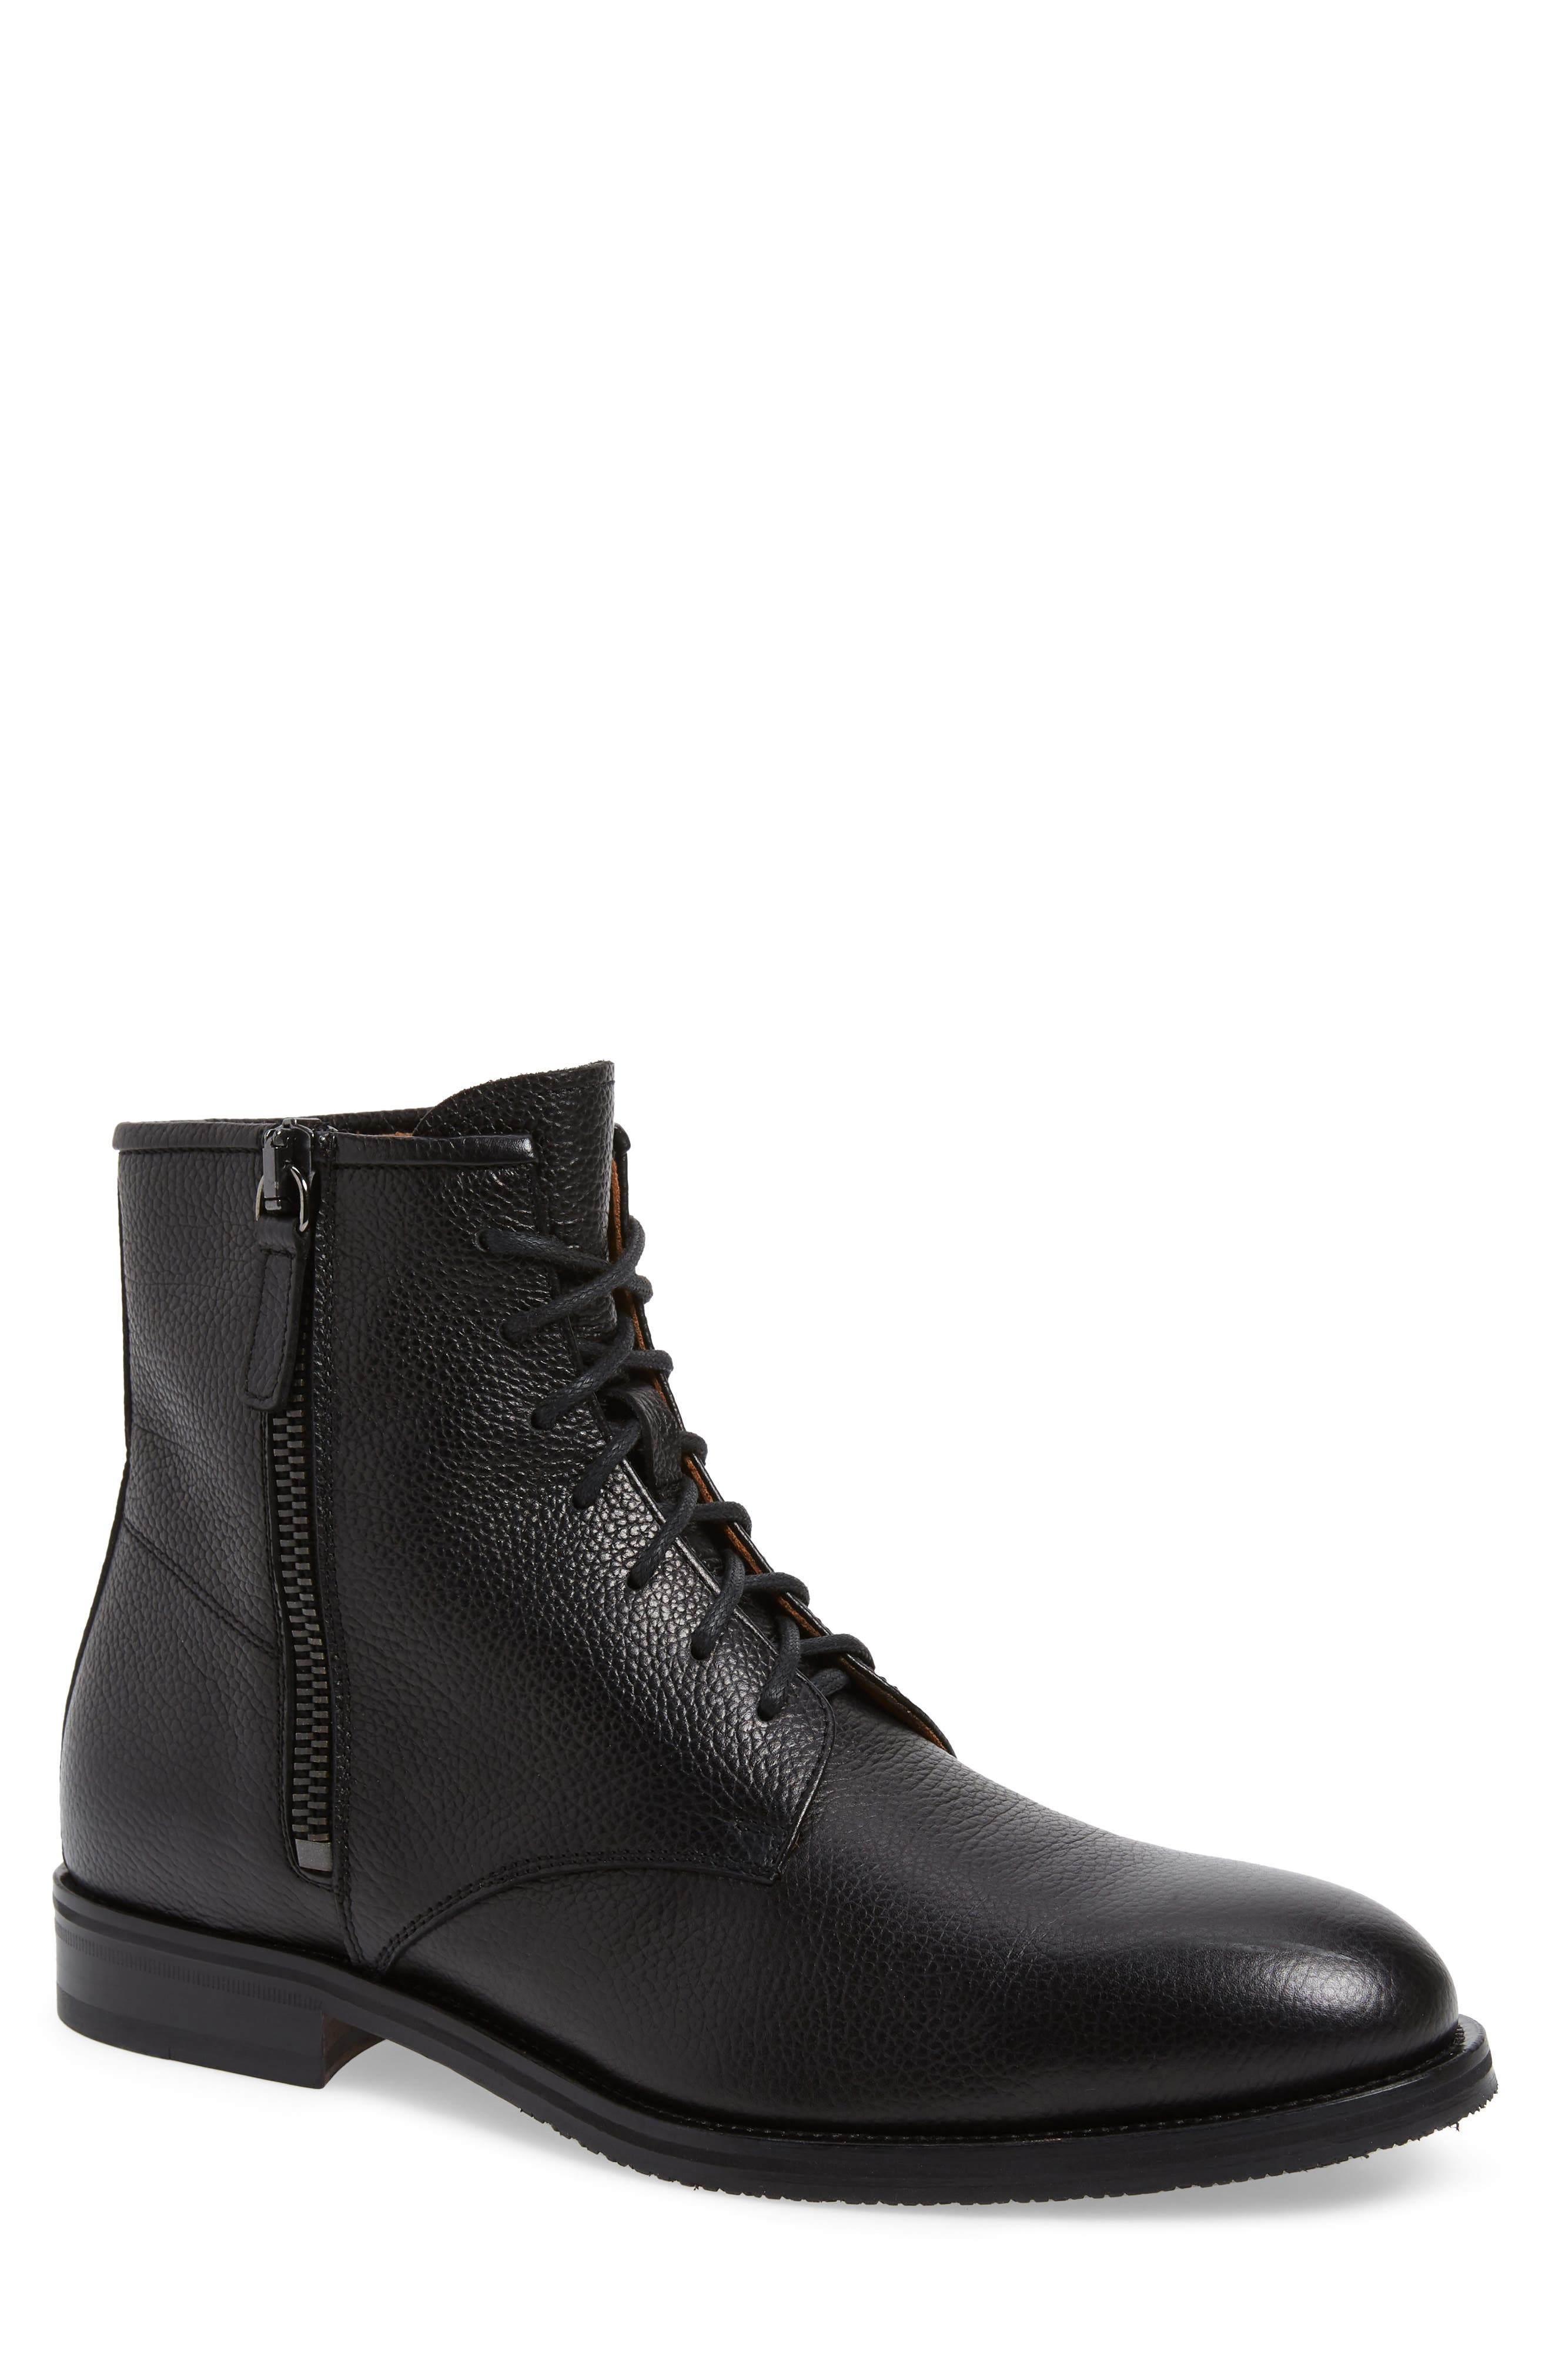 Aquatalia Vladimir Weatherproof Boot- Black